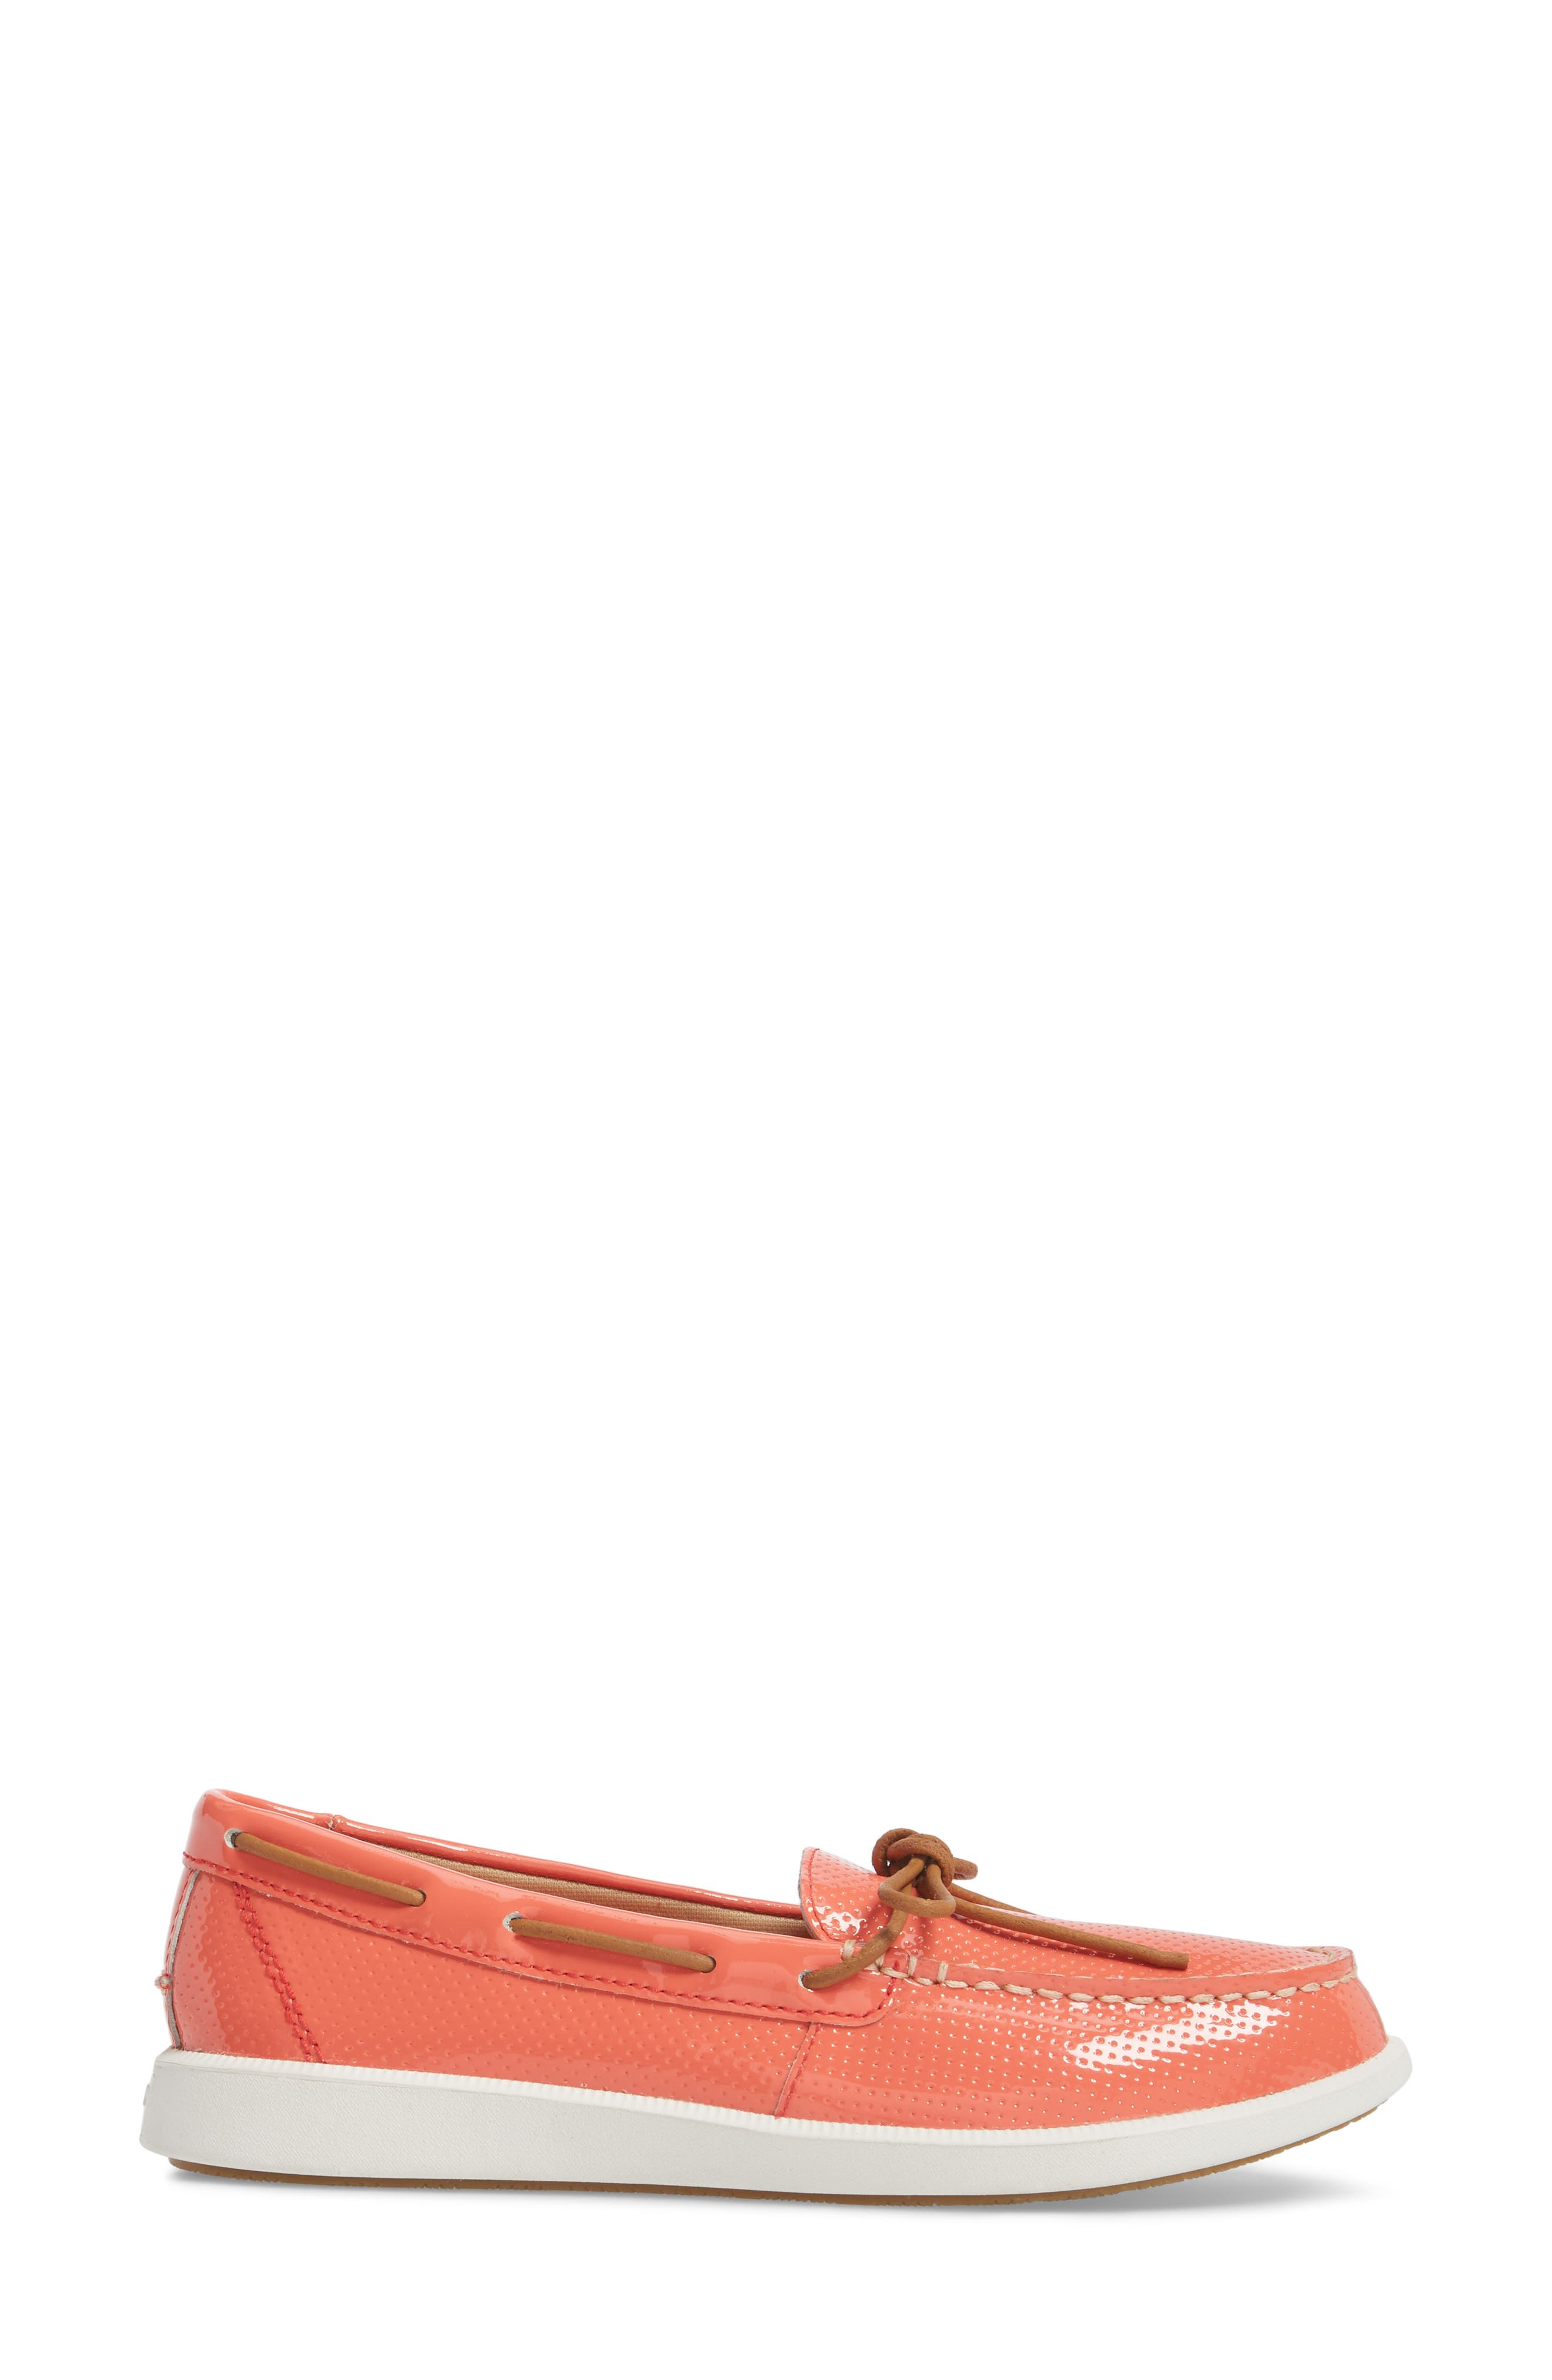 Oasis Boat Shoe,                             Alternate thumbnail 3, color,                             Coral Patent Leather